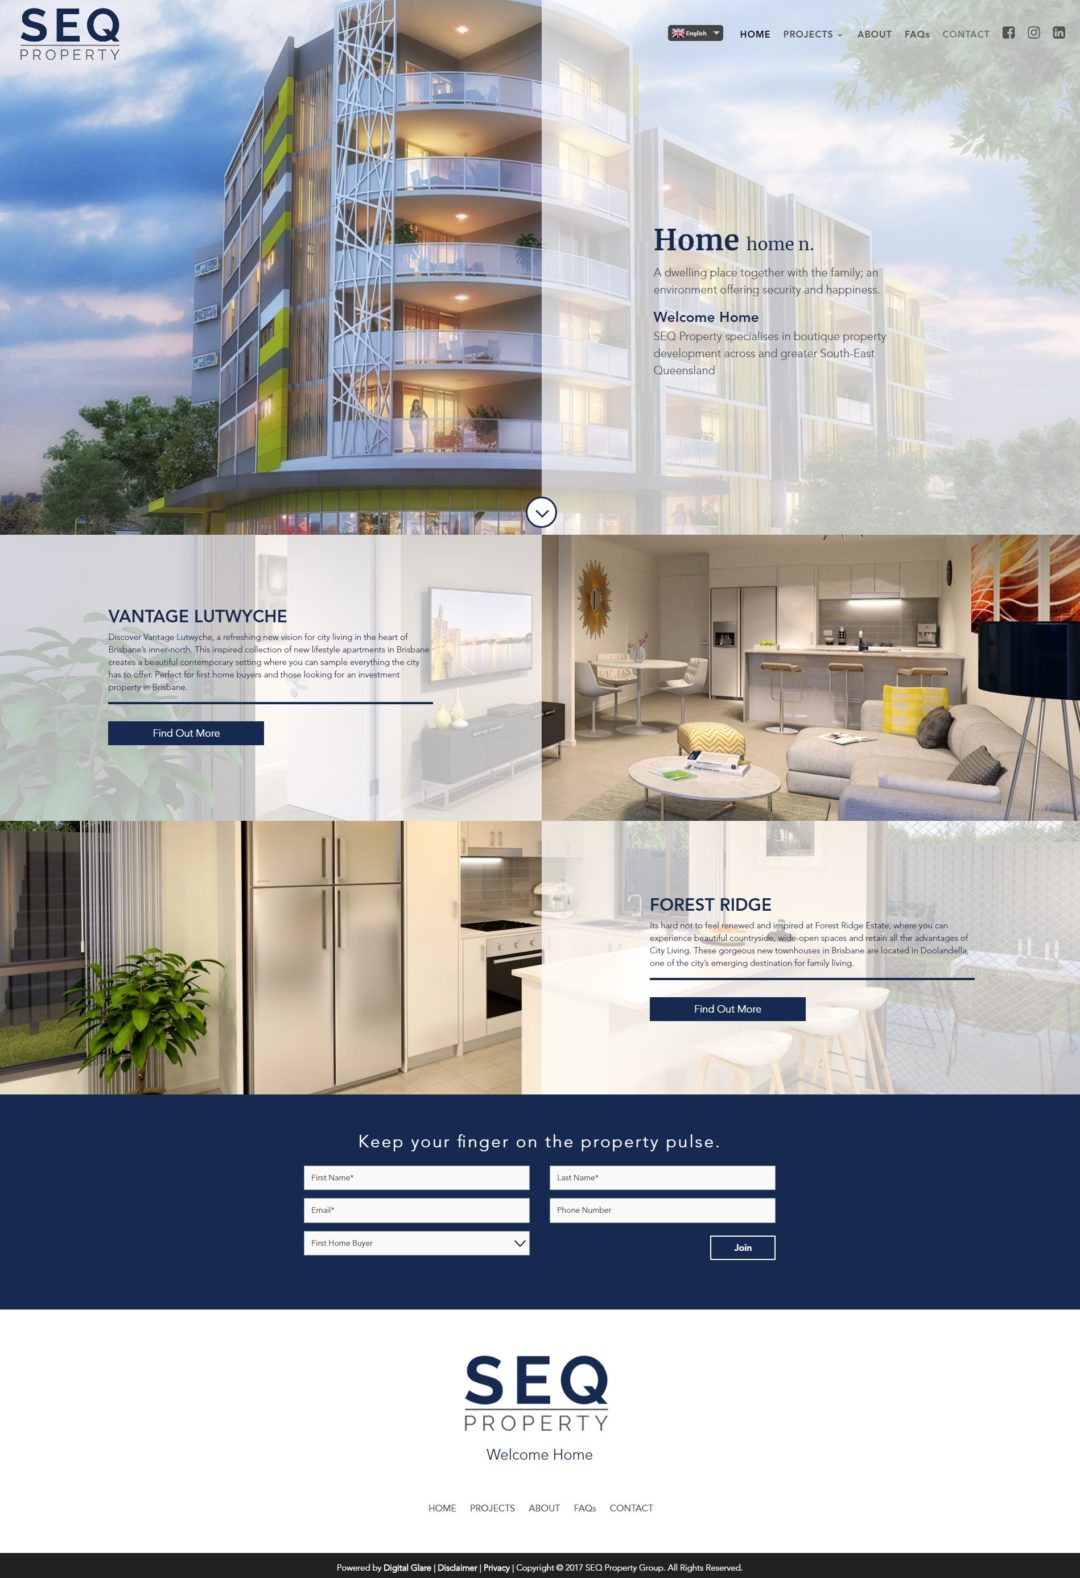 SEQ Property – Website & Digital Marketing